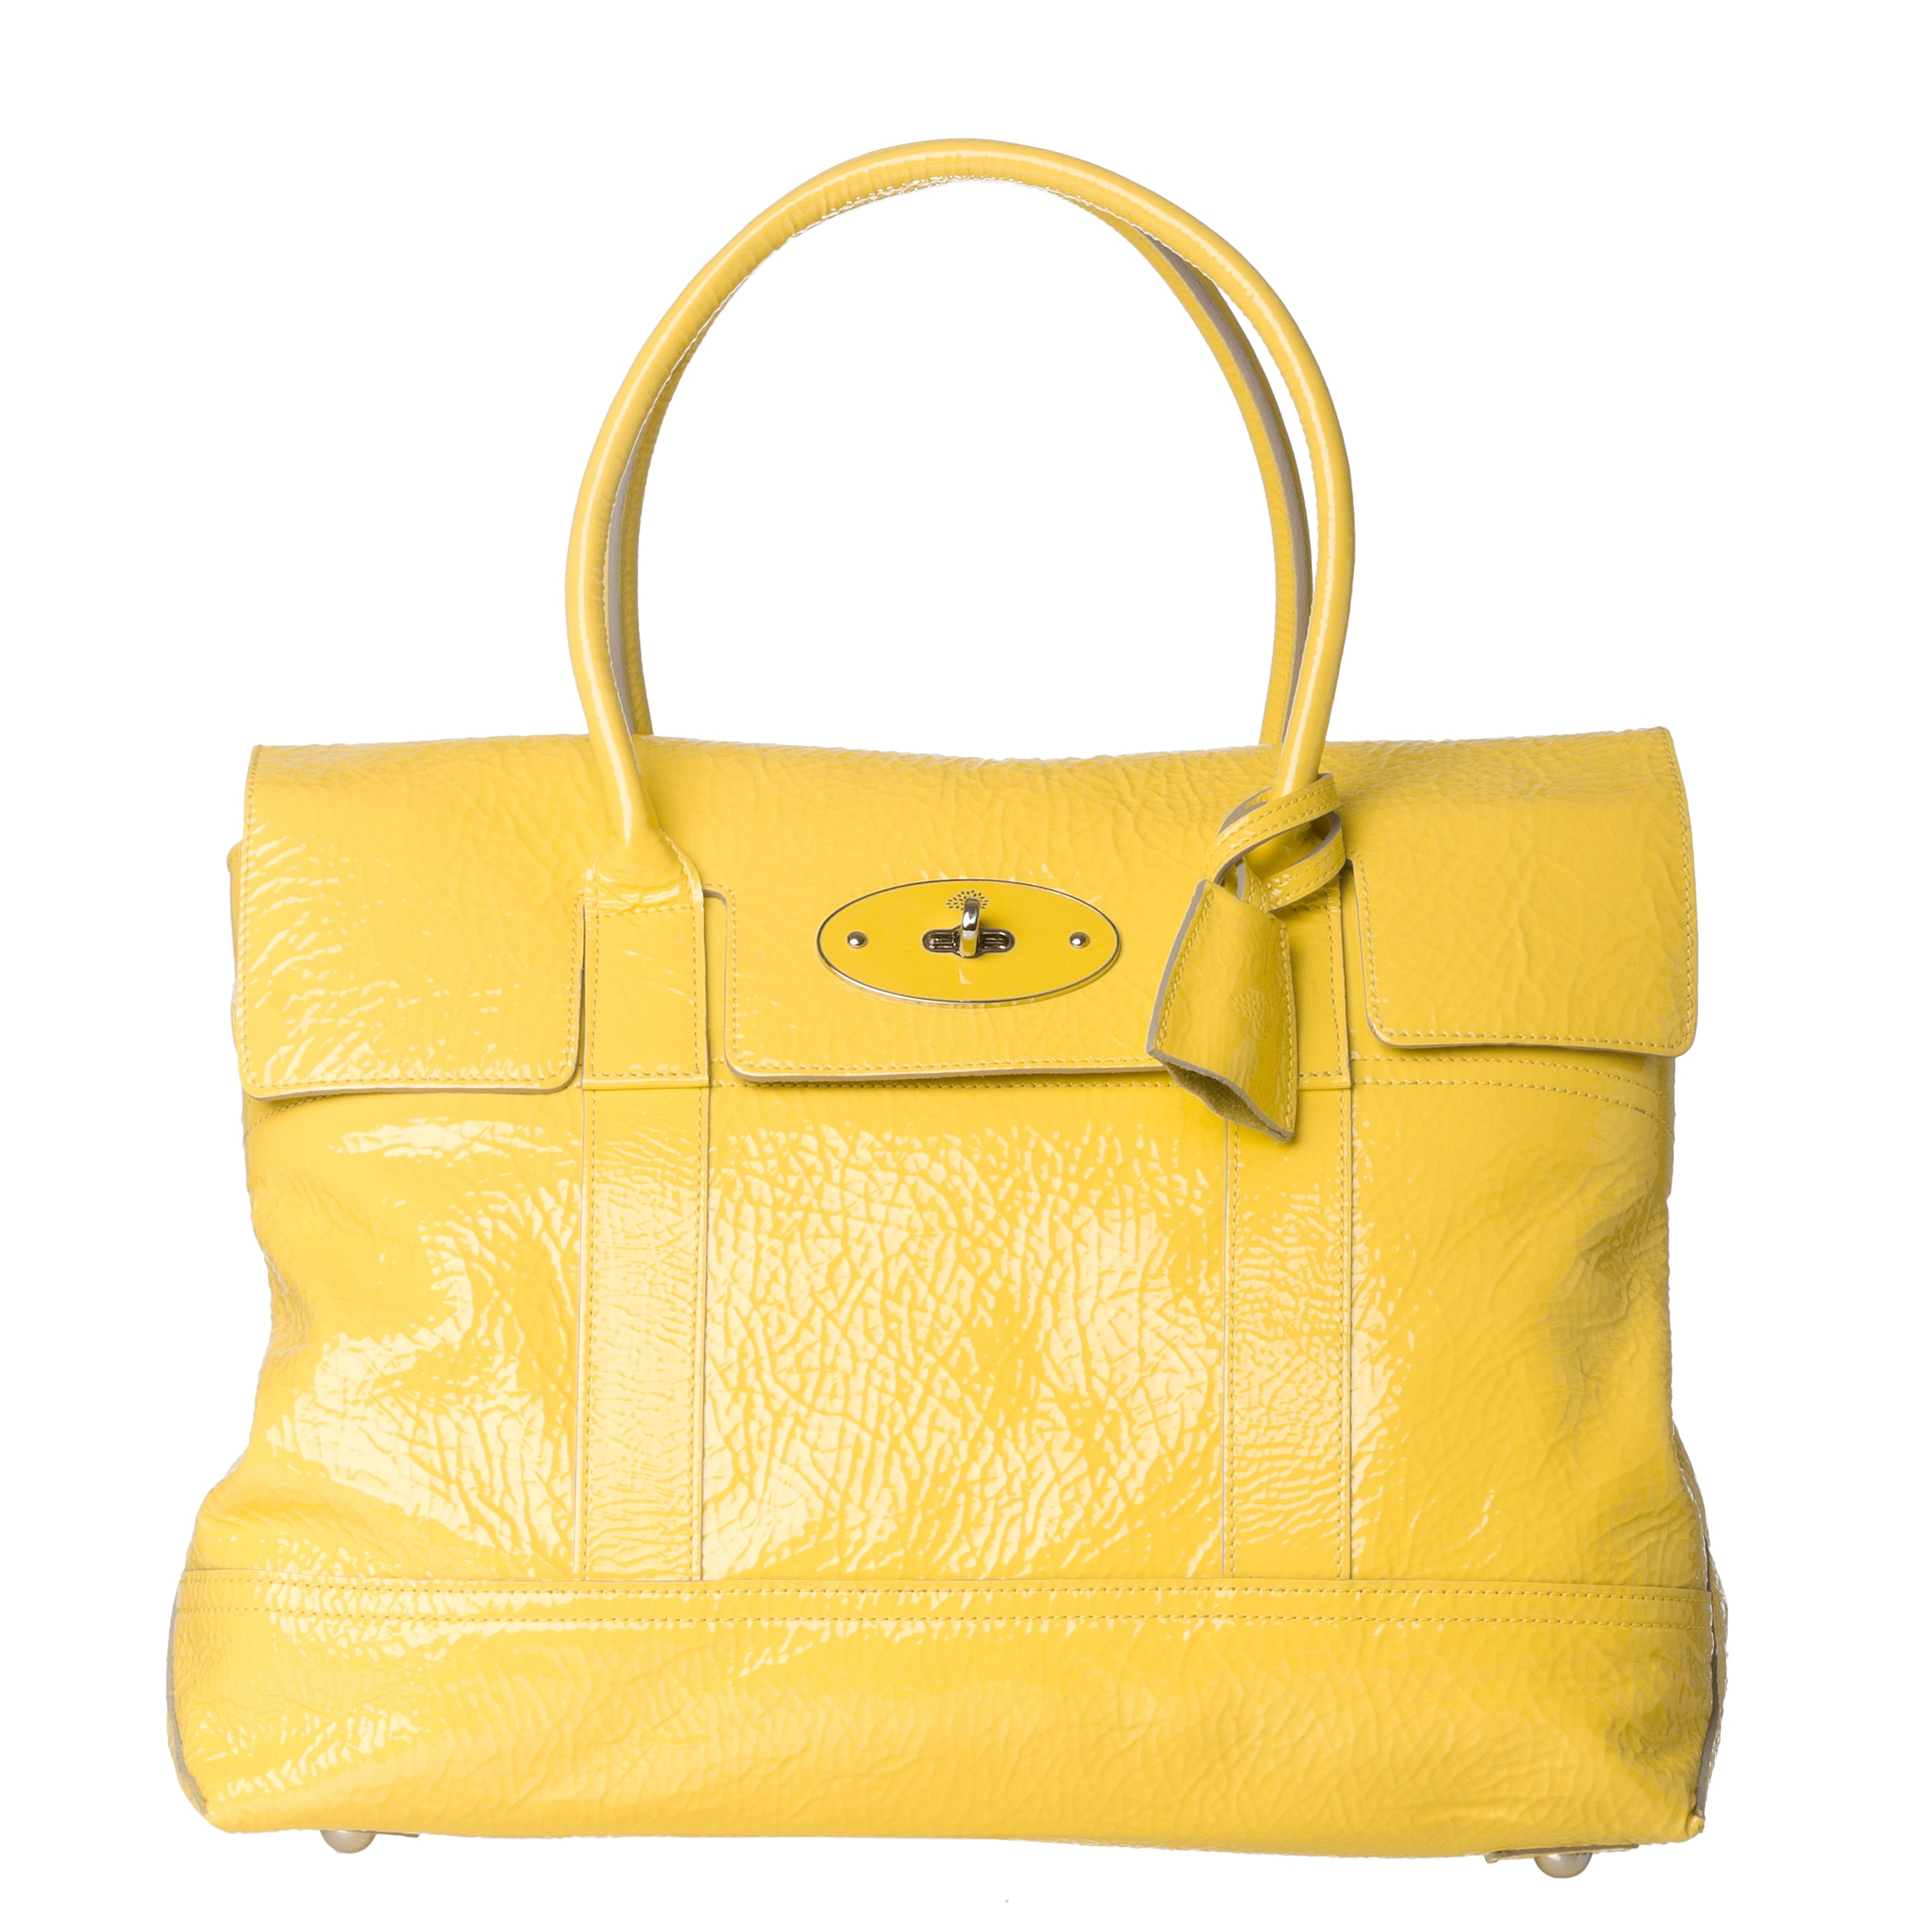 Mulberry 'Holiday Bayswater' Lemon Patent Leather Satchel